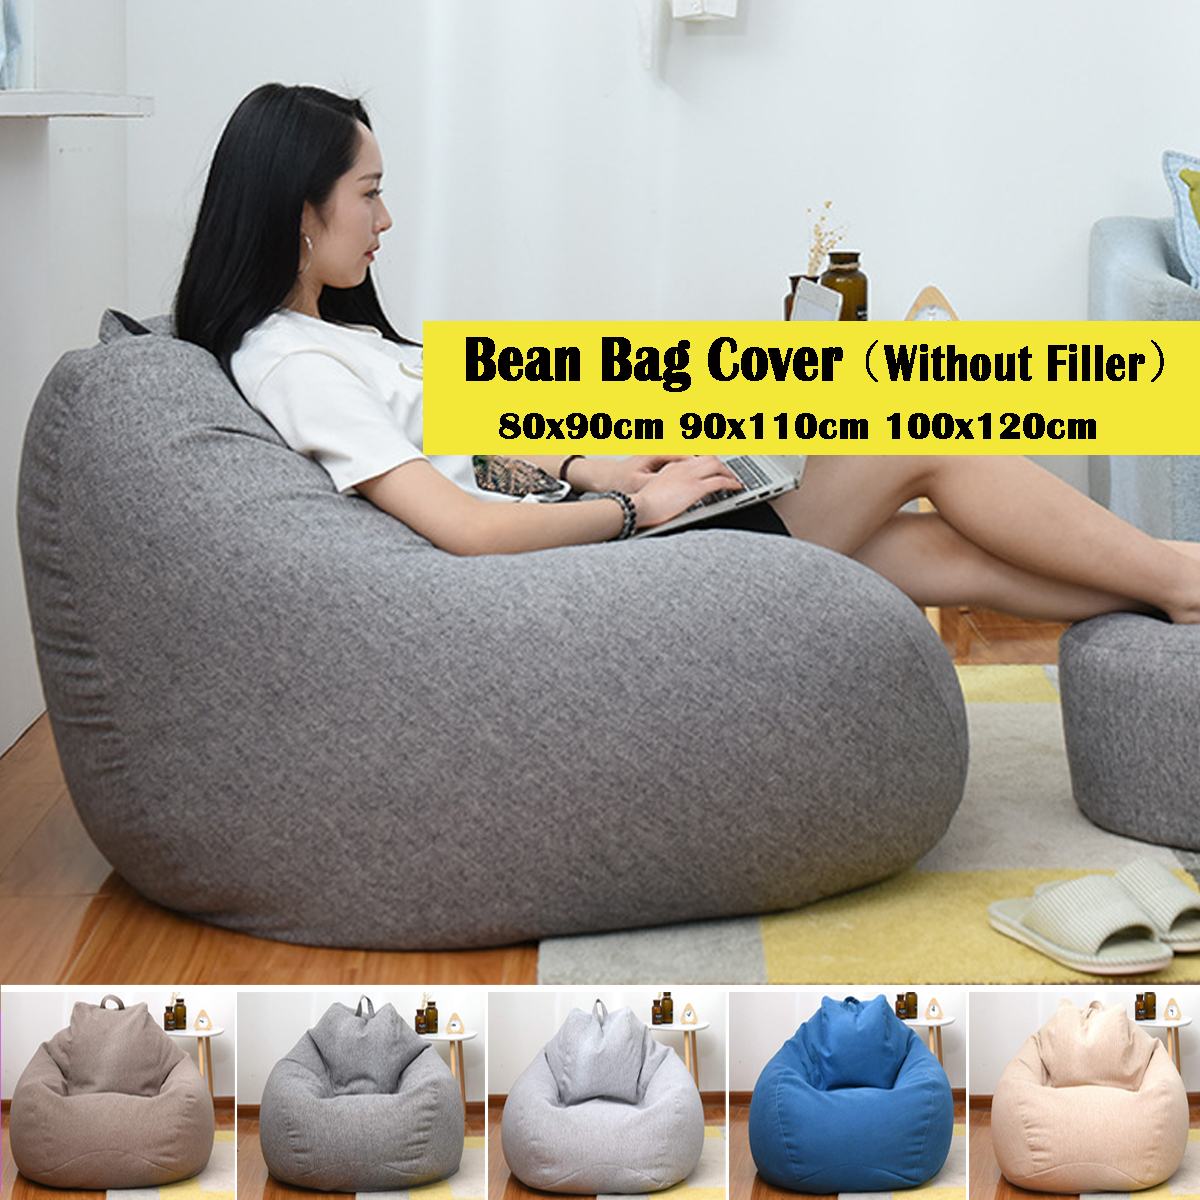 Stupendous Details About Adults Kid Large Bean Bag Chairs Sofa Cover Indoor Lounger Soft Sofa No Filling Ibusinesslaw Wood Chair Design Ideas Ibusinesslaworg